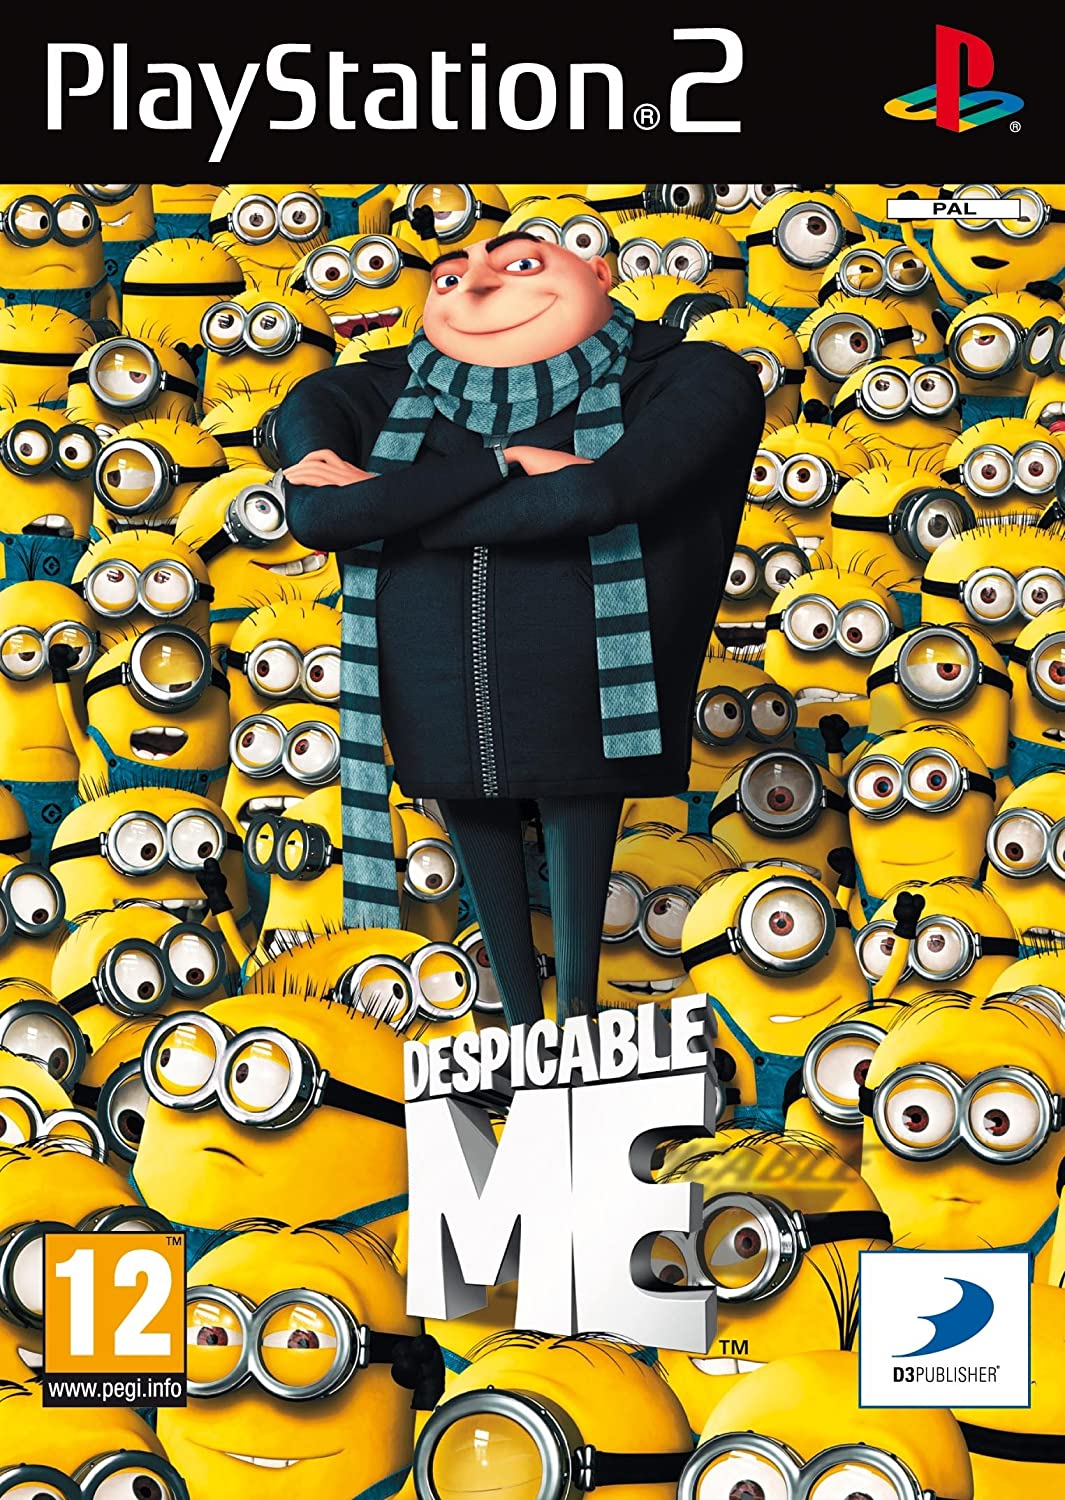 Despicable Me Xbox Ps3 Ps4 Pc Xbox360 XboxOne jtag rgh dvd iso Wii Nintendo Mac Linux